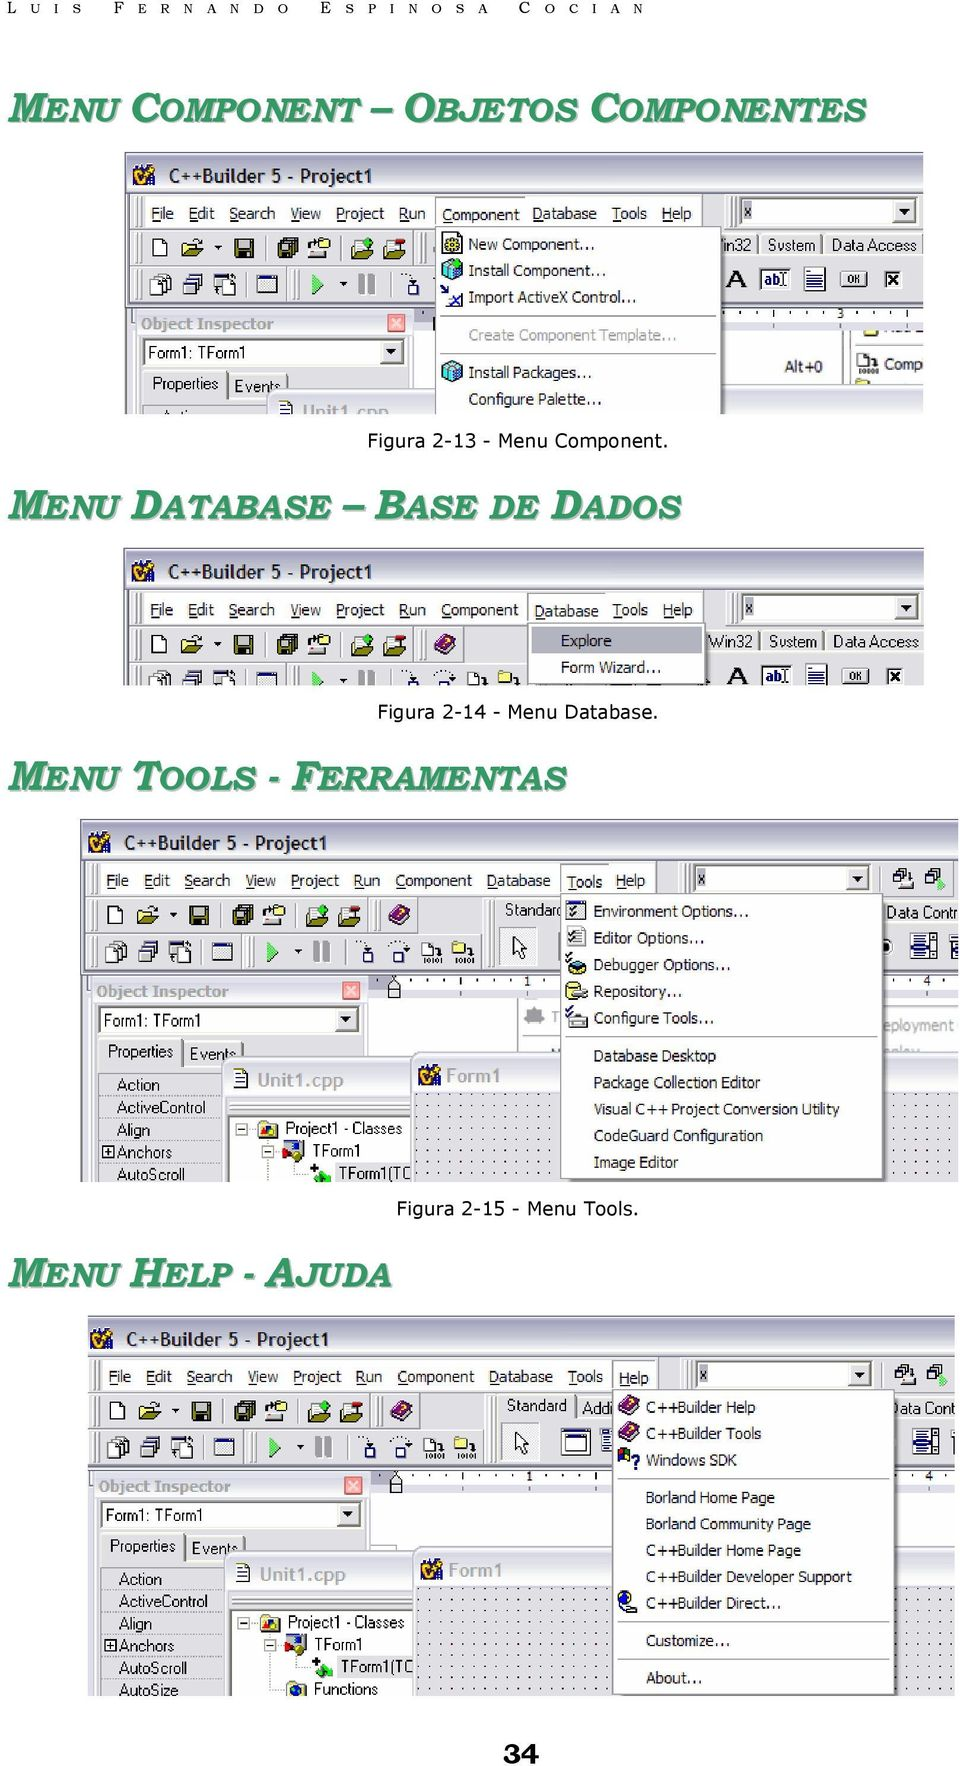 MENU DATABASE BASE DE DADOS Figura 2-14 - Menu